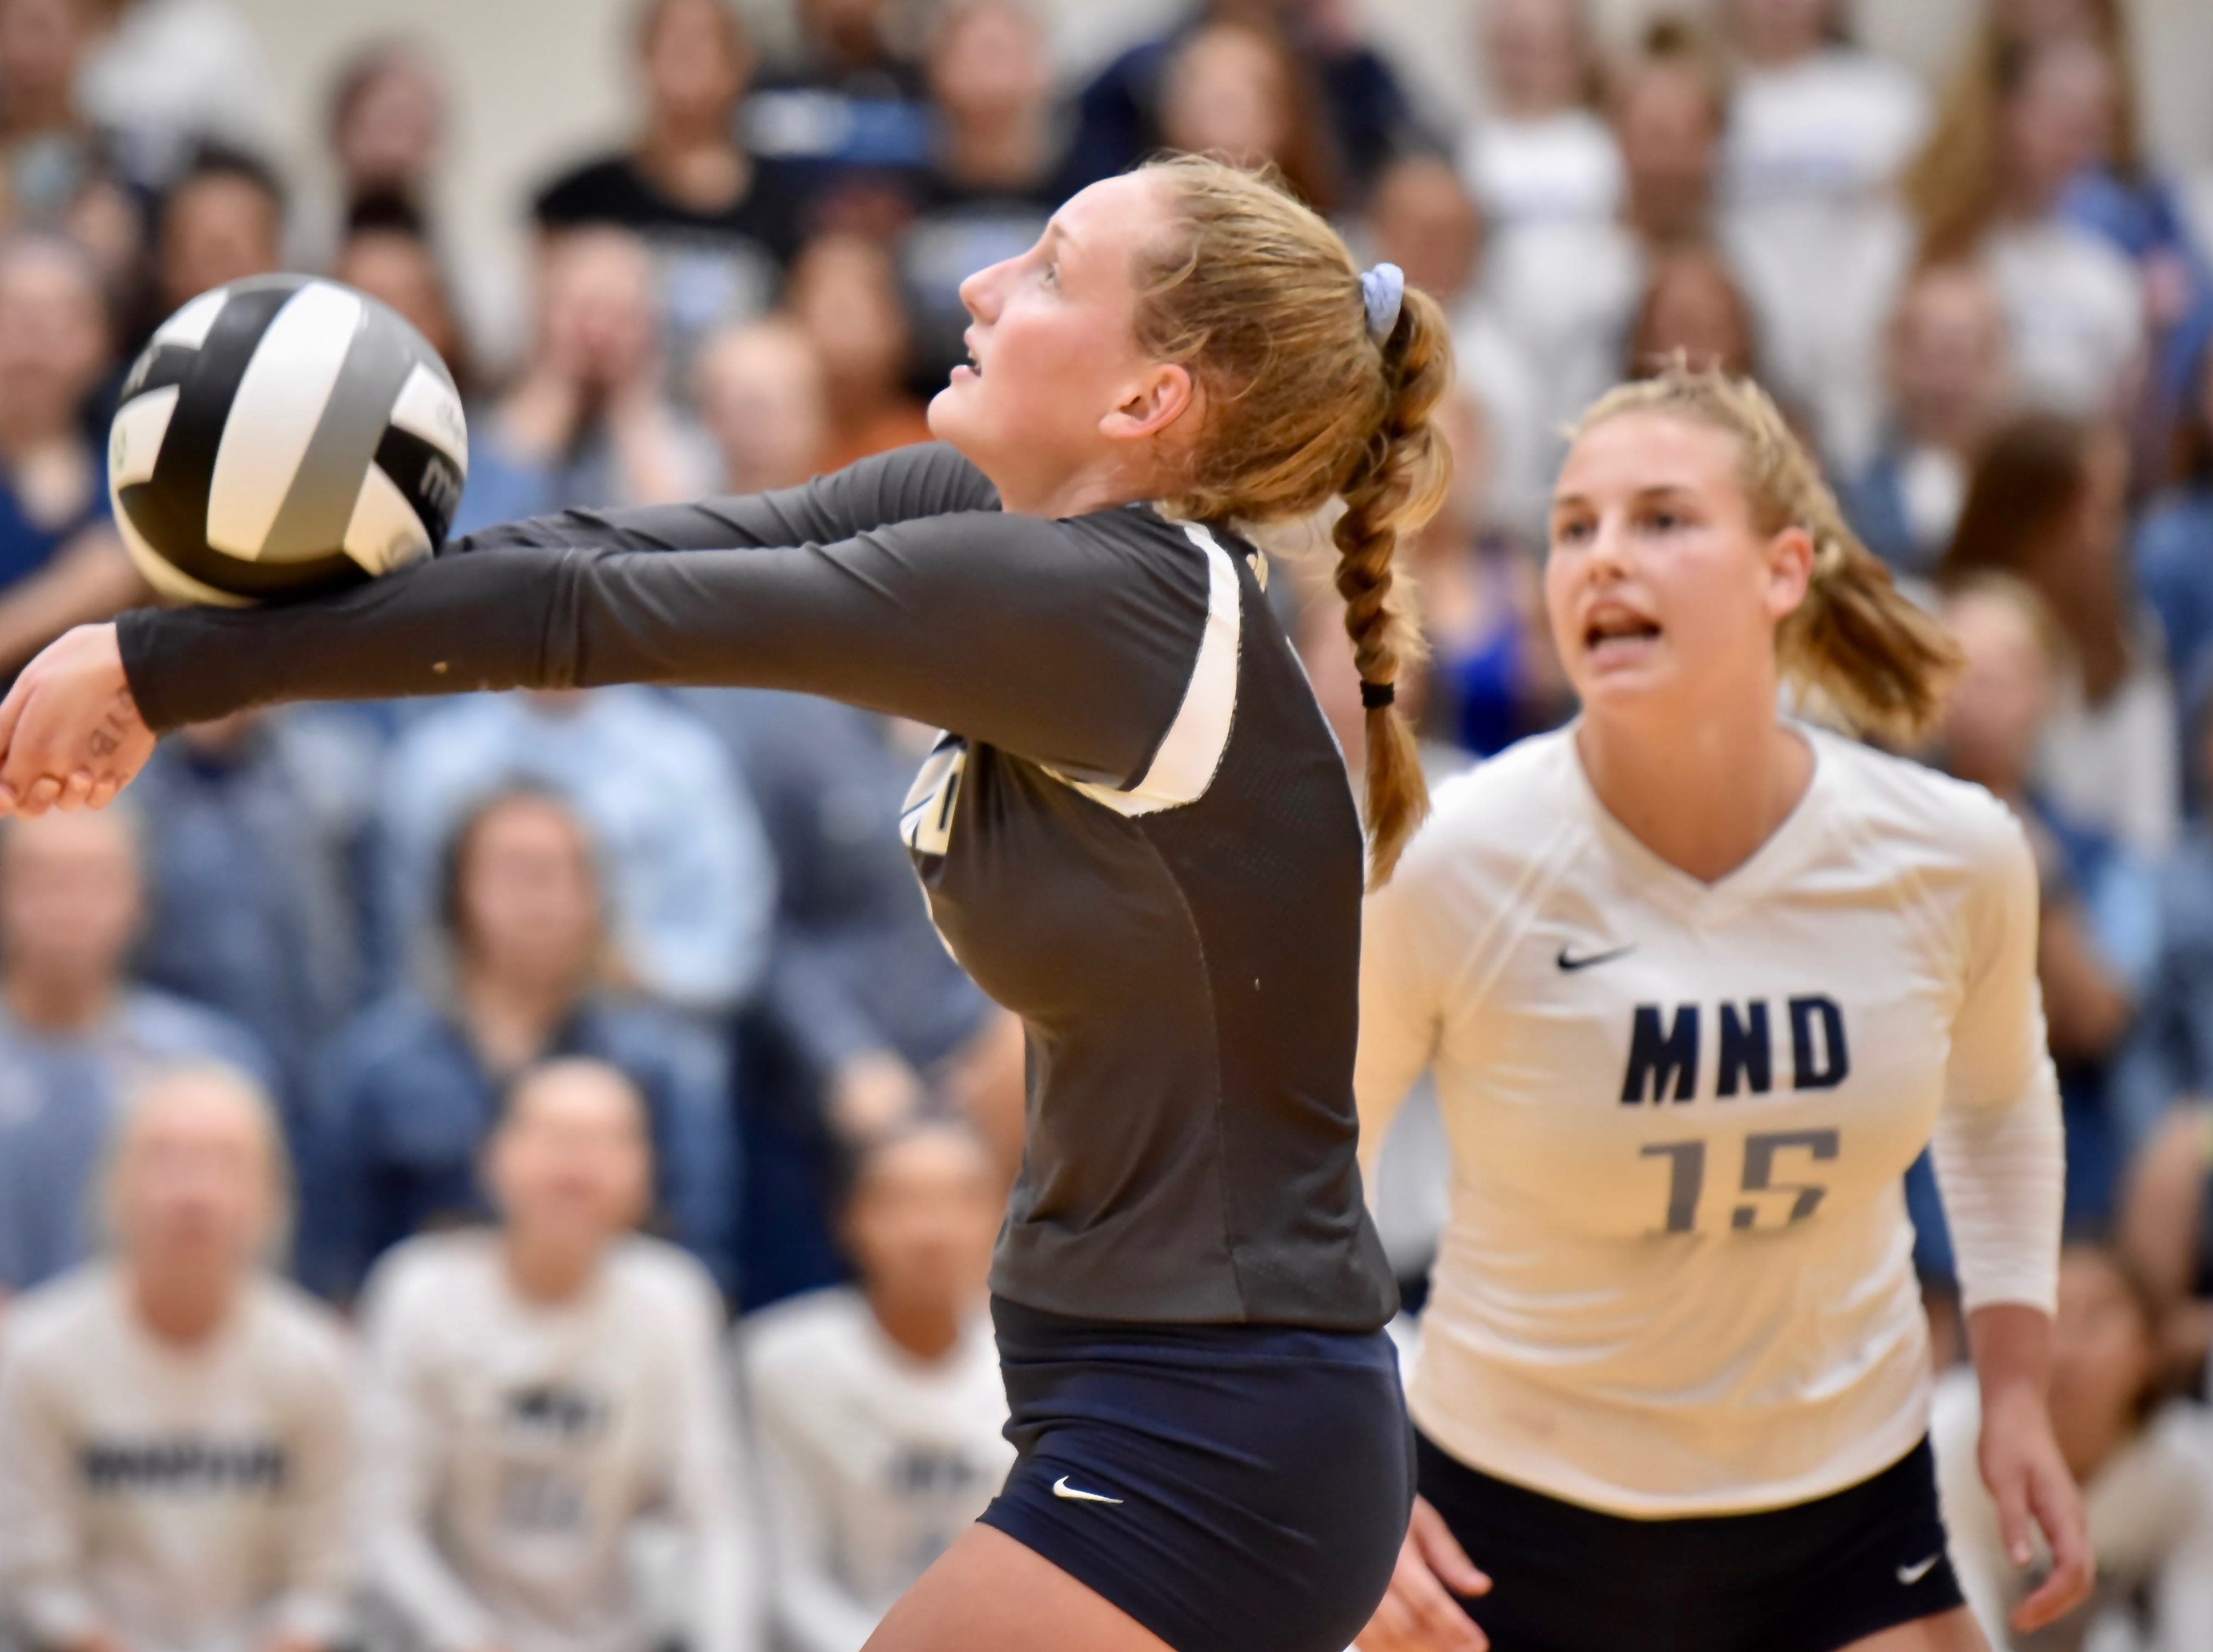 Mount Notre Dame's Emily Ernst bumps the ball to a teammate against Ursuline Tuesday, Sept. 11, 2018 at Ursuline Academy